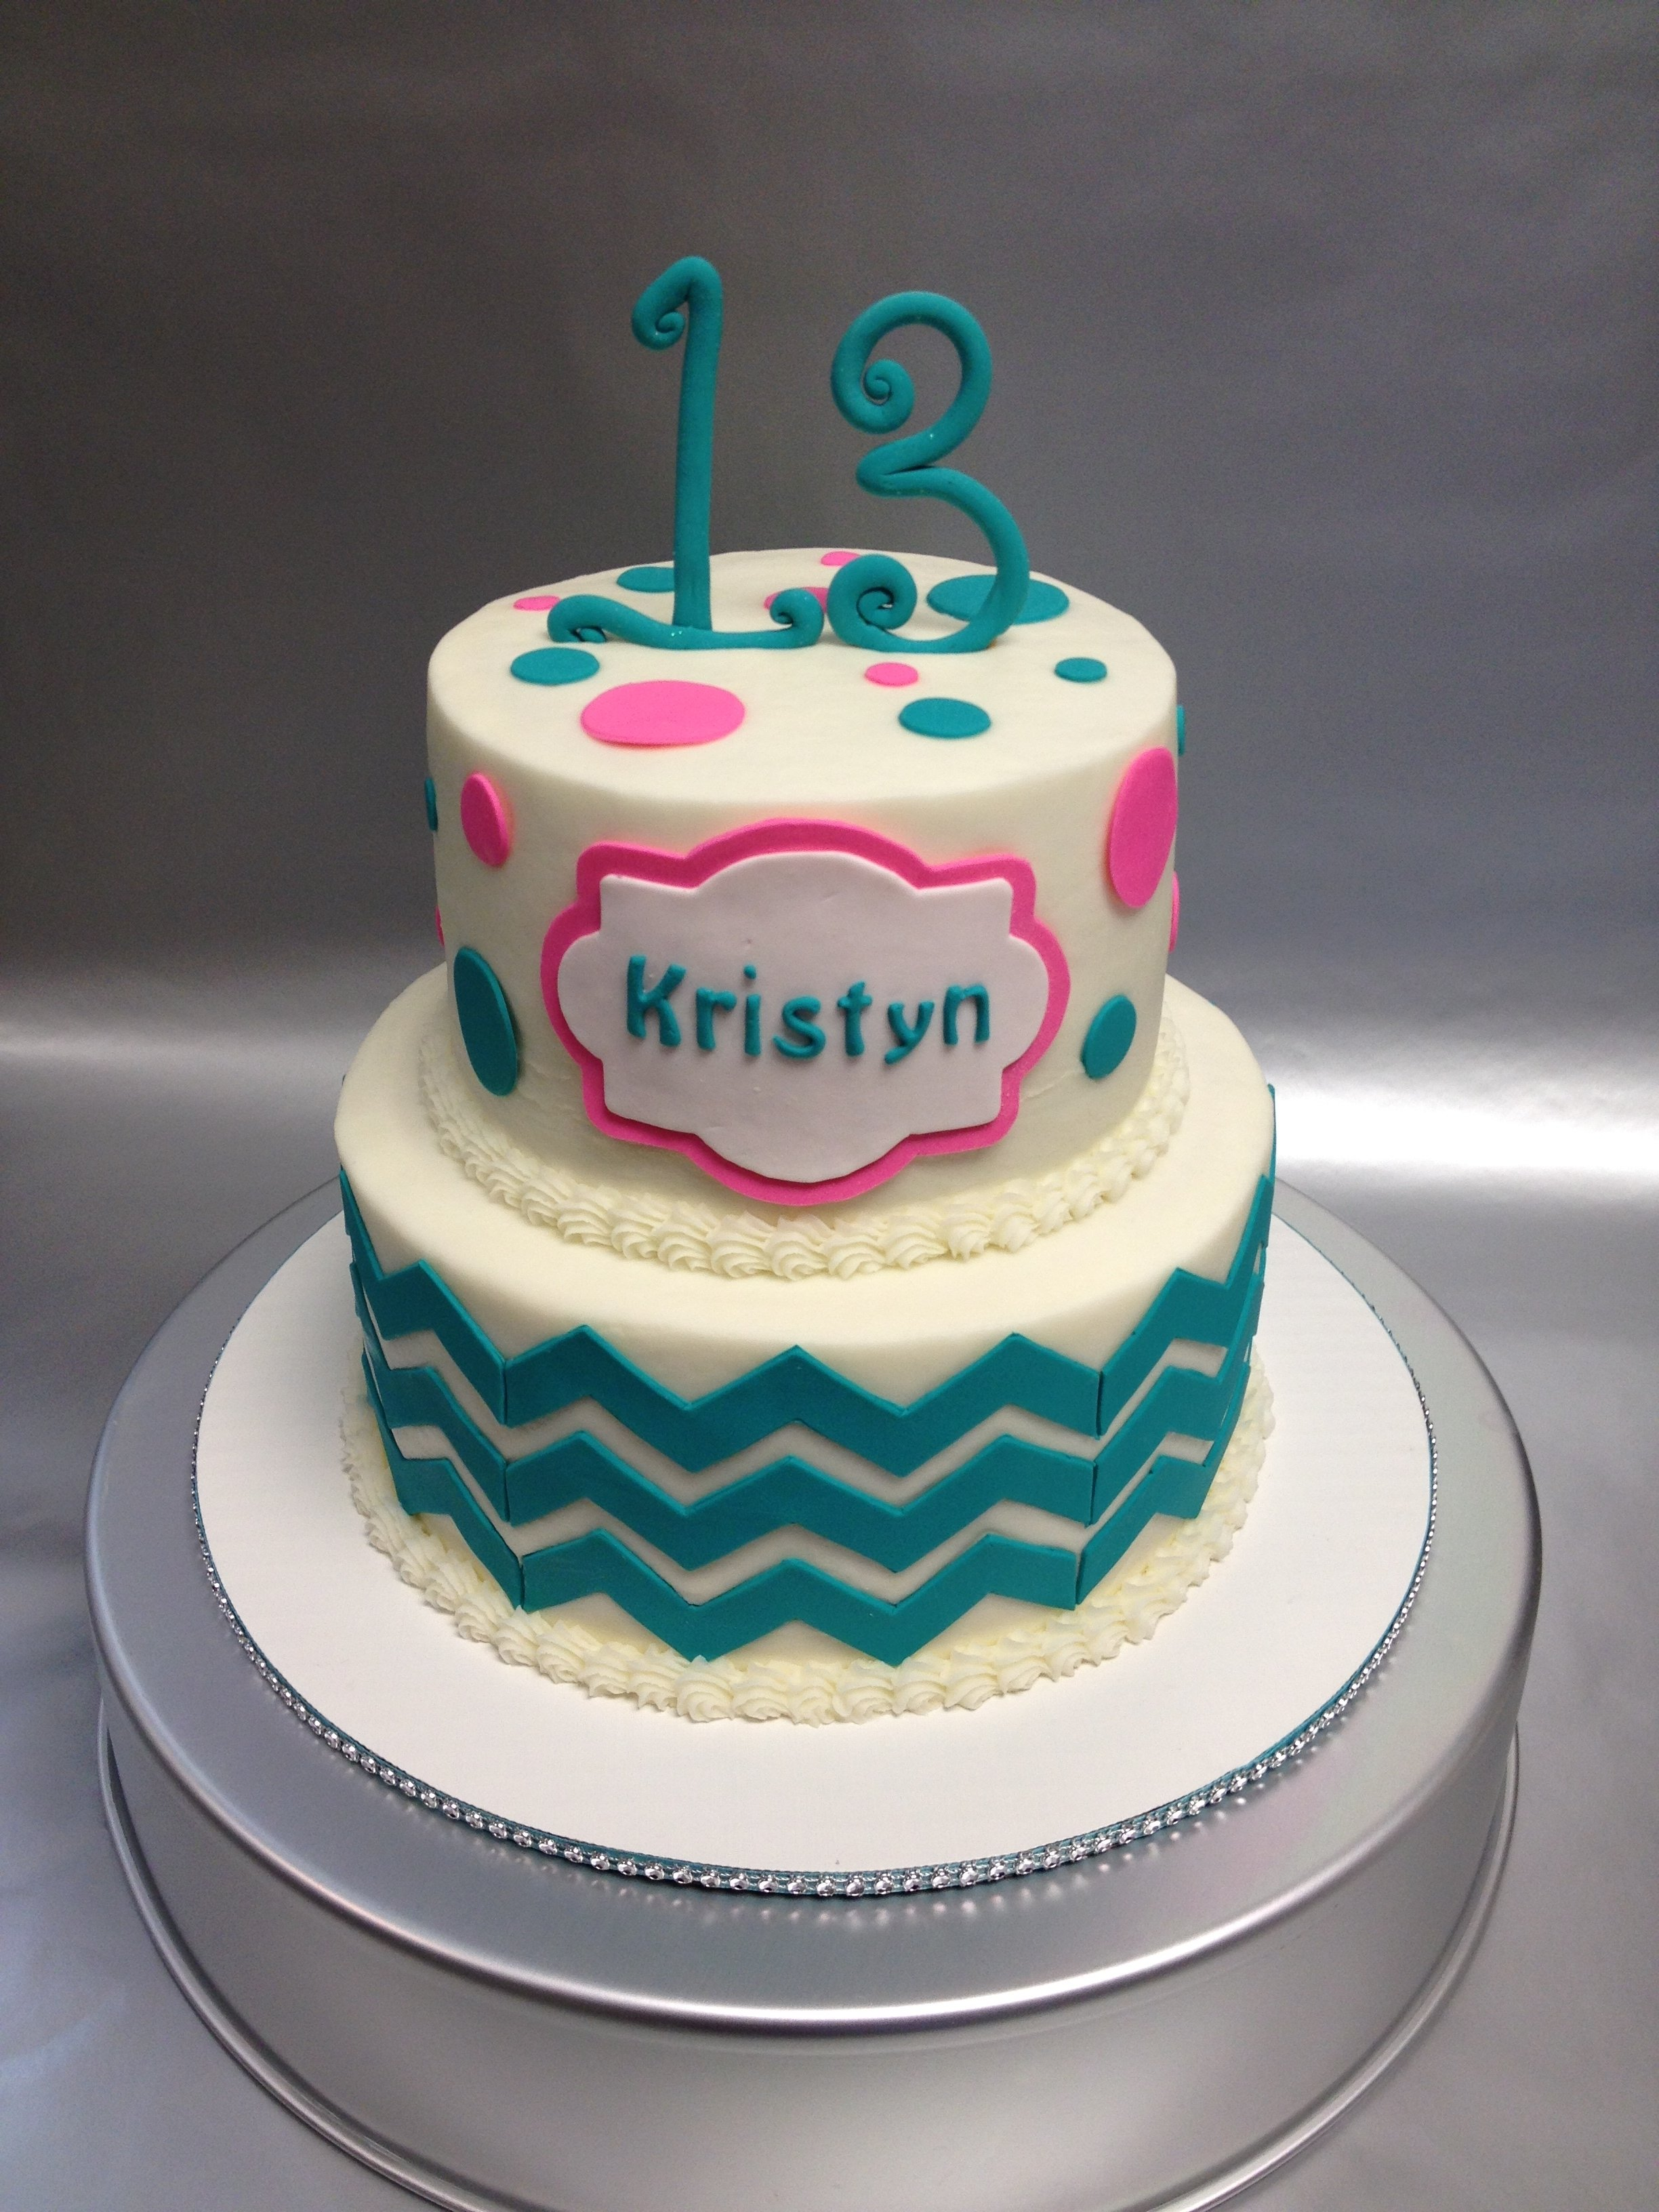 10 Fantastic 14 Year Old Birthday Cake Ideas A Pretty 2 Tiered Gluten Free